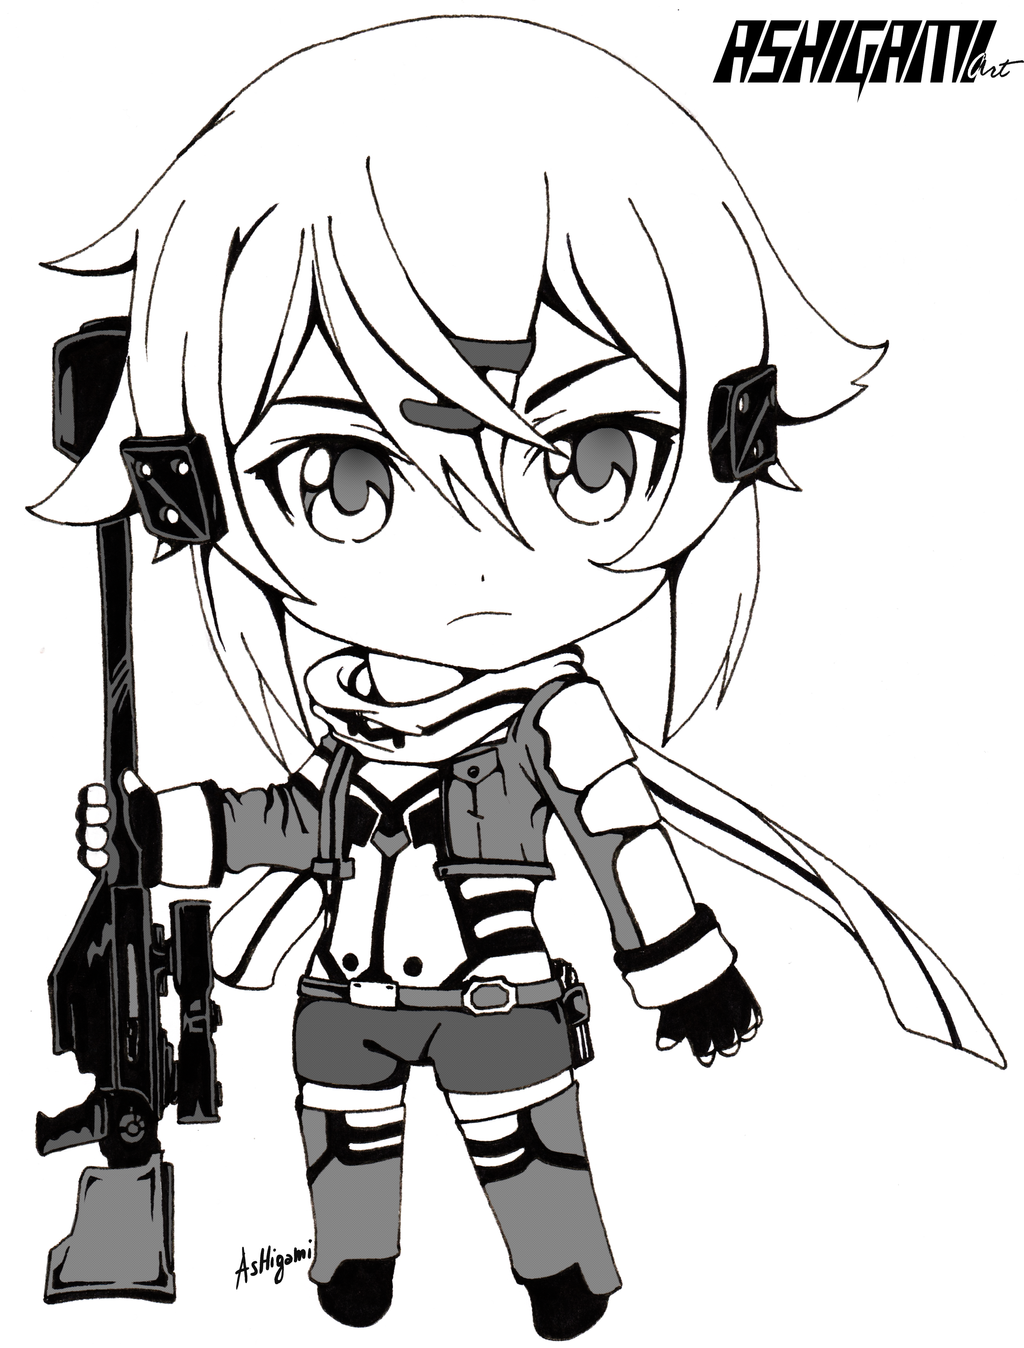 Sinon Chibi Sword Art Online Ii By Ashigami On Deviantart